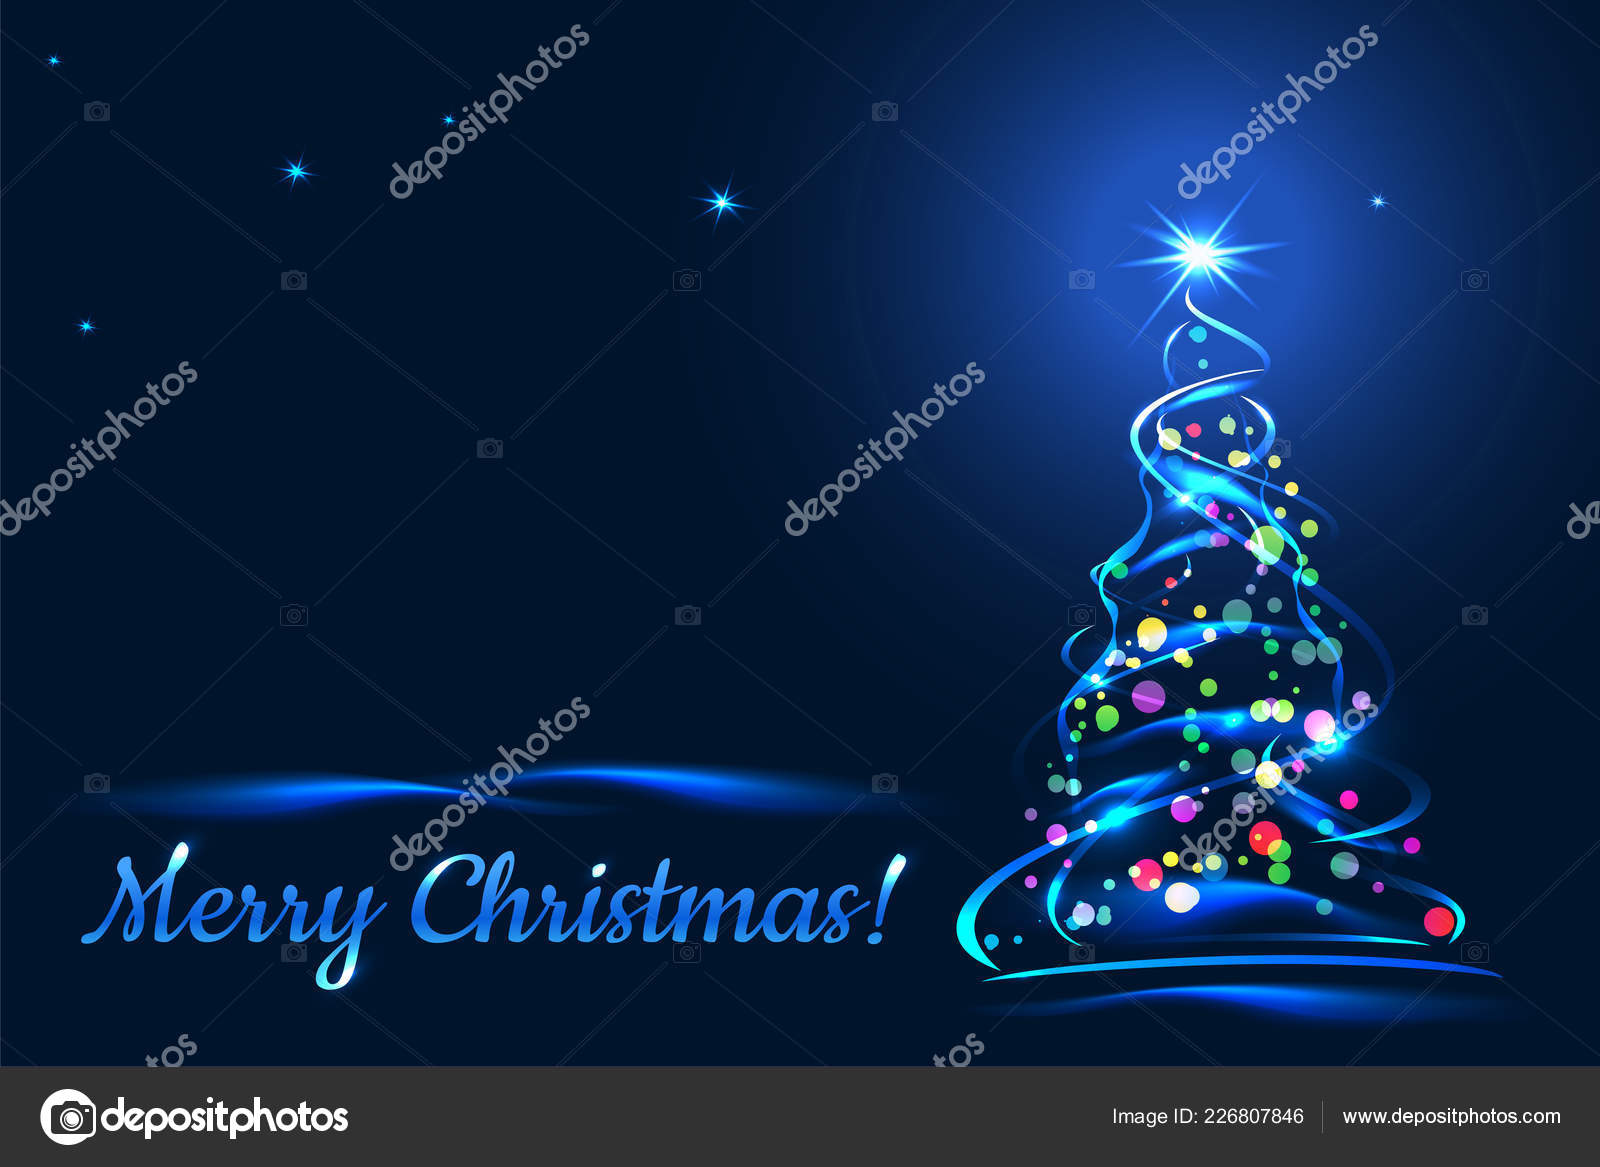 Merry Christmas Greeting Card Xmas Tree Blue Background